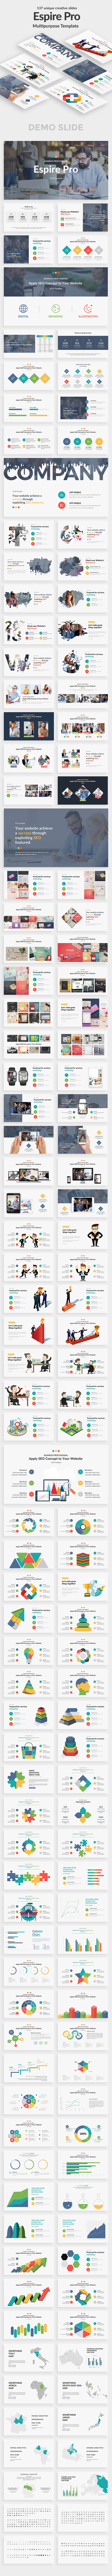 Espire Multipurpose Google Slide Template - Google Slides Presentation Templates